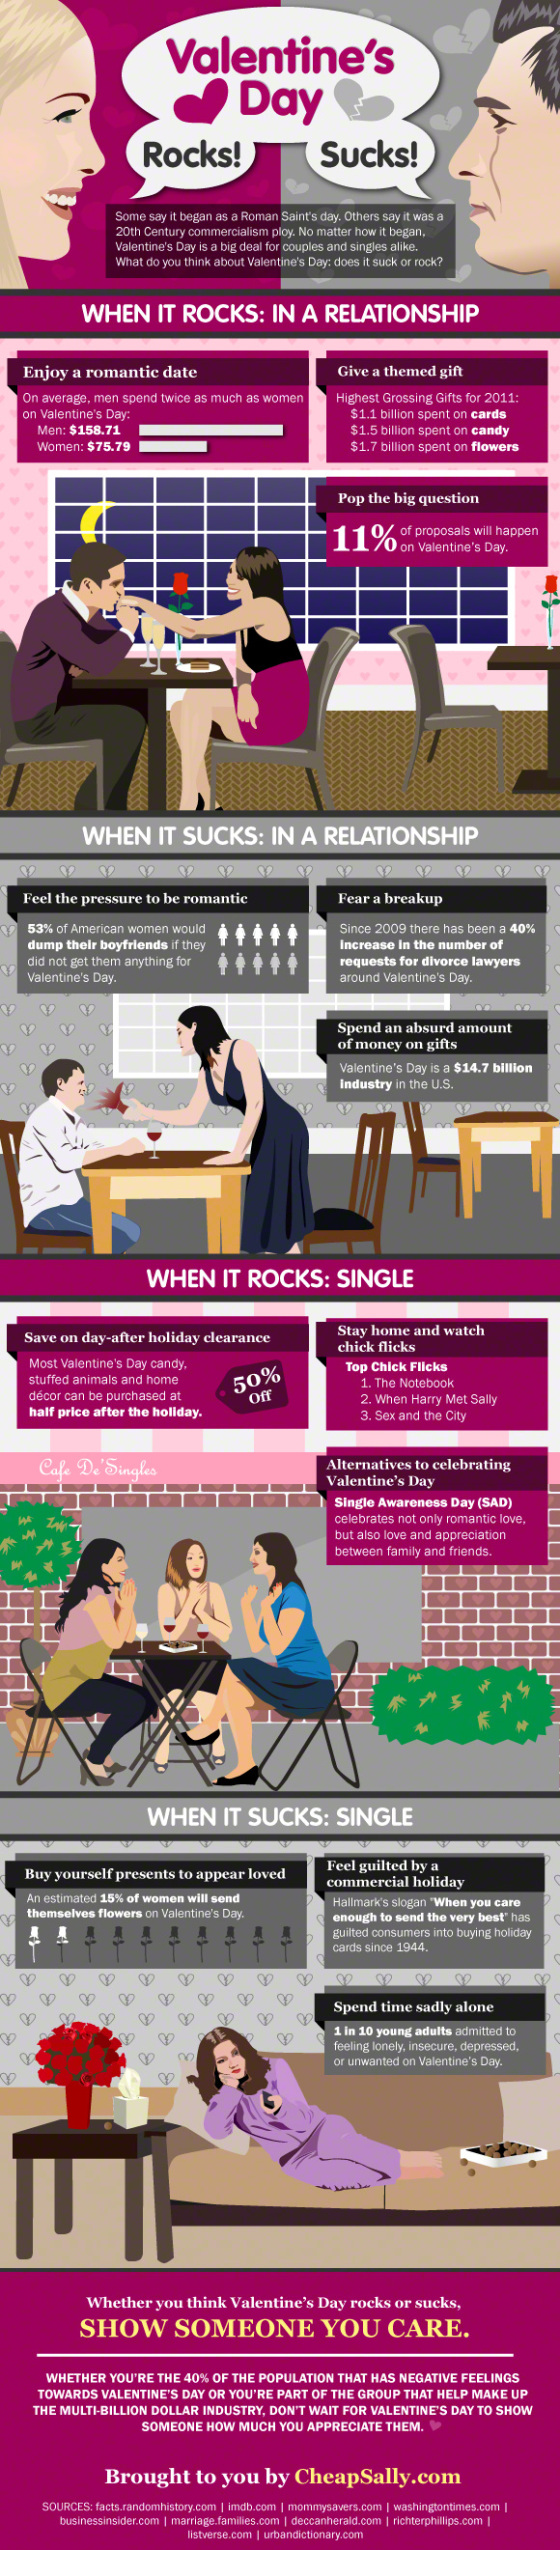 Valentine's Day Rocks or Sucks